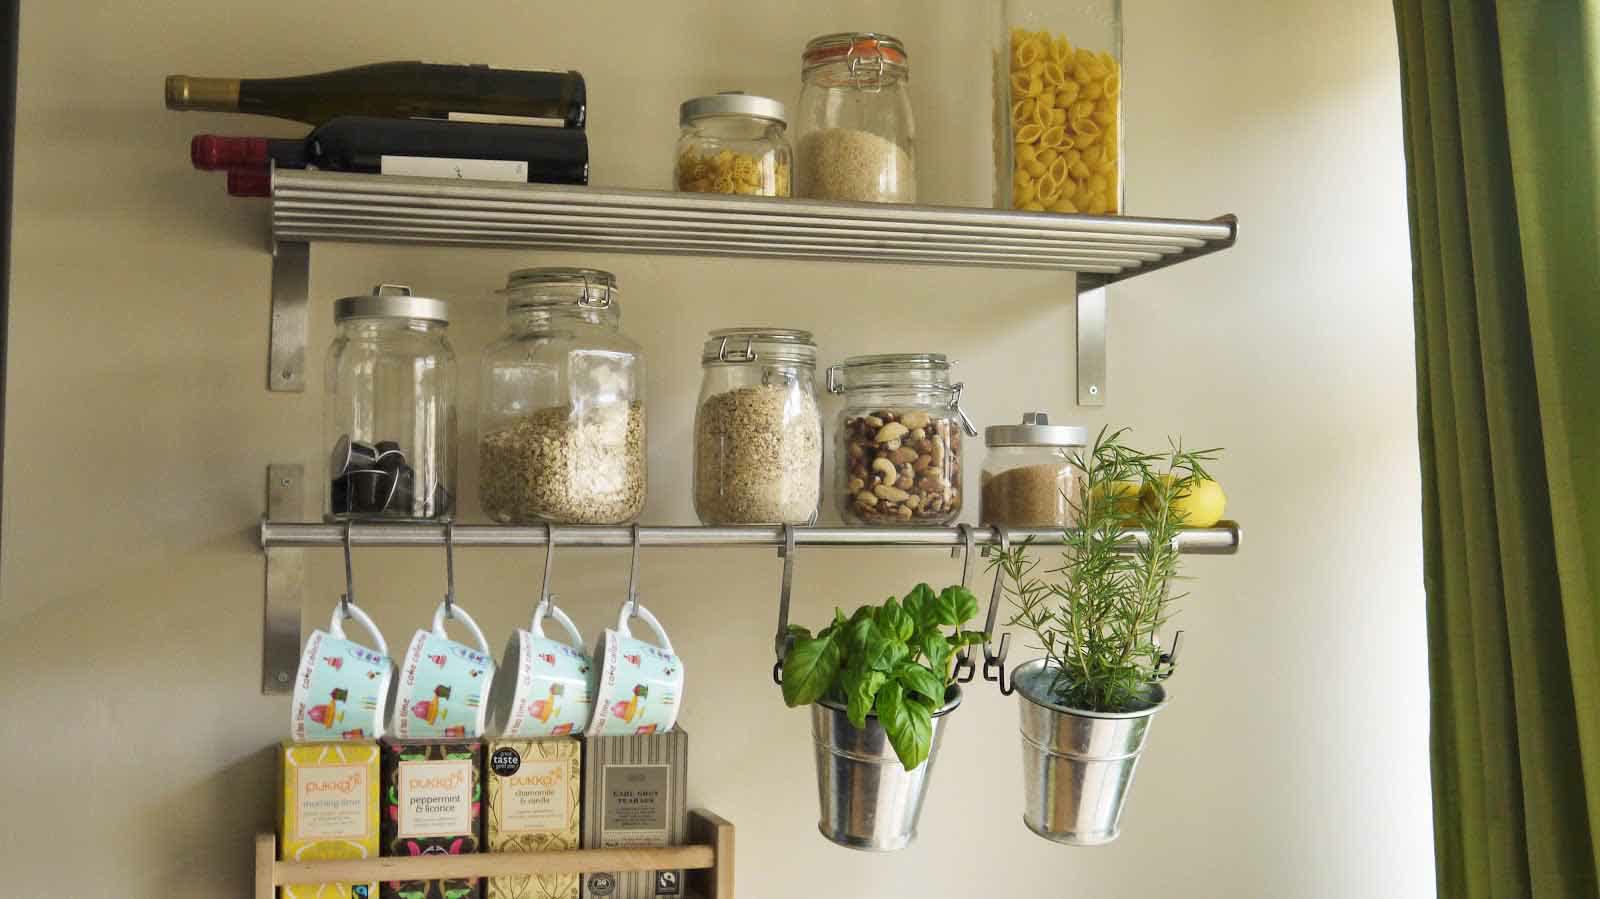 Kitchen Organizer Racks 11 clever and easy kitchen organization ideas youll love workwithnaturefo